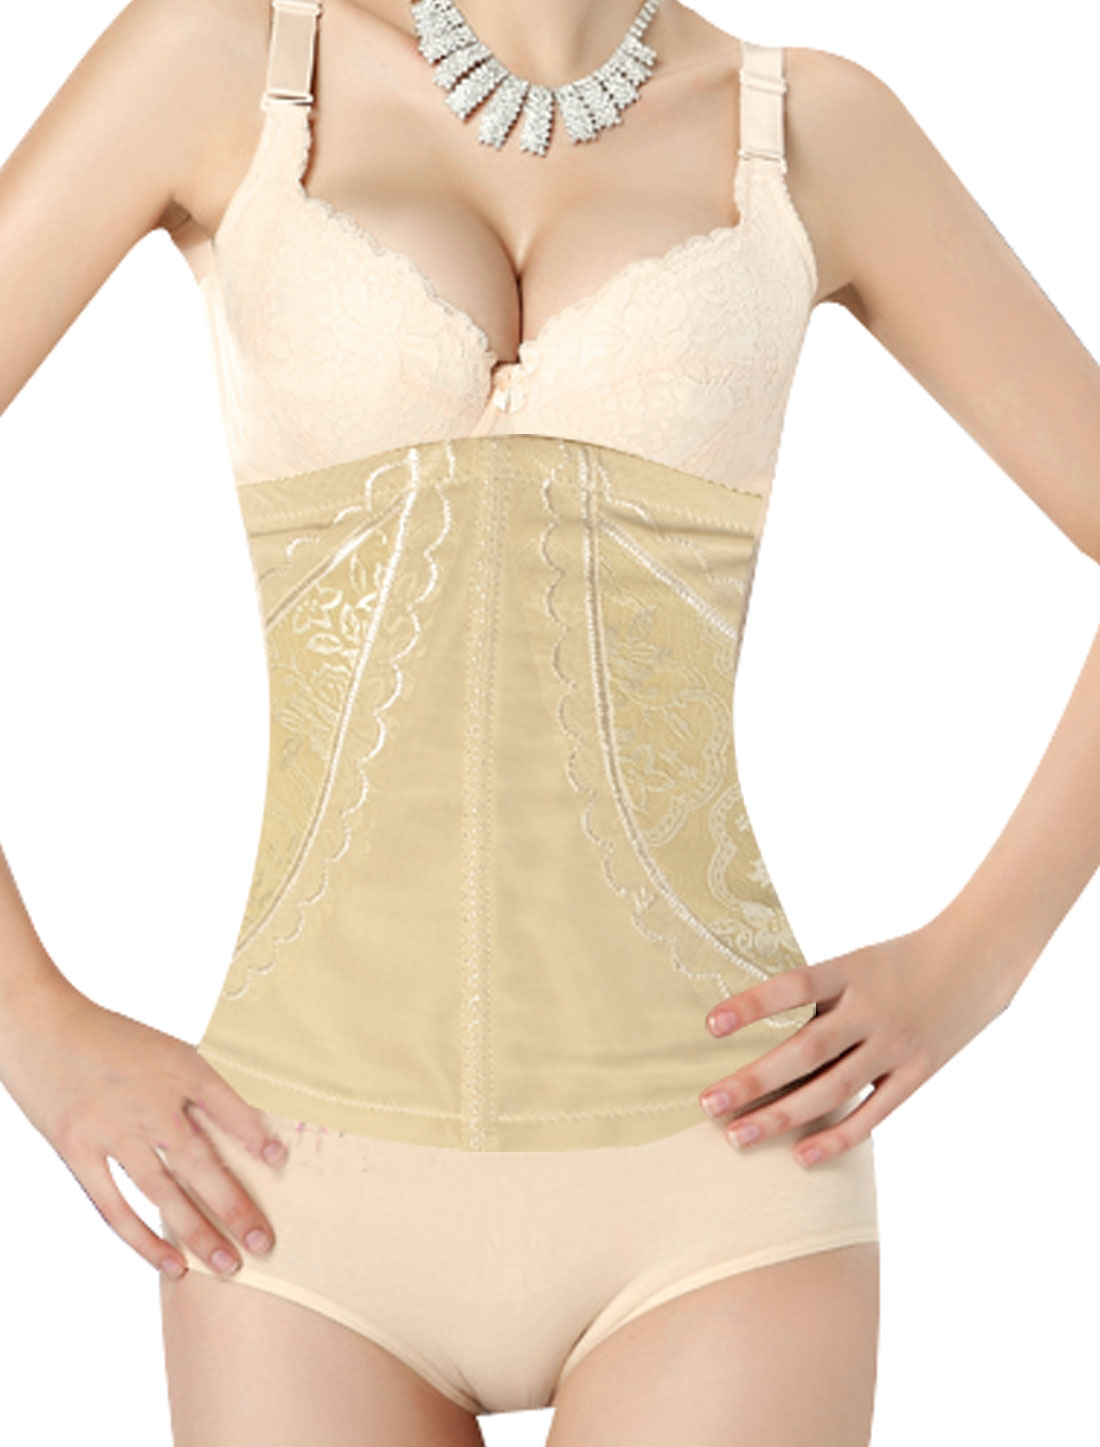 Beige Flowers Lace Adjustable Stretchy Waist Trimmer Cincher Size XS for Ladies